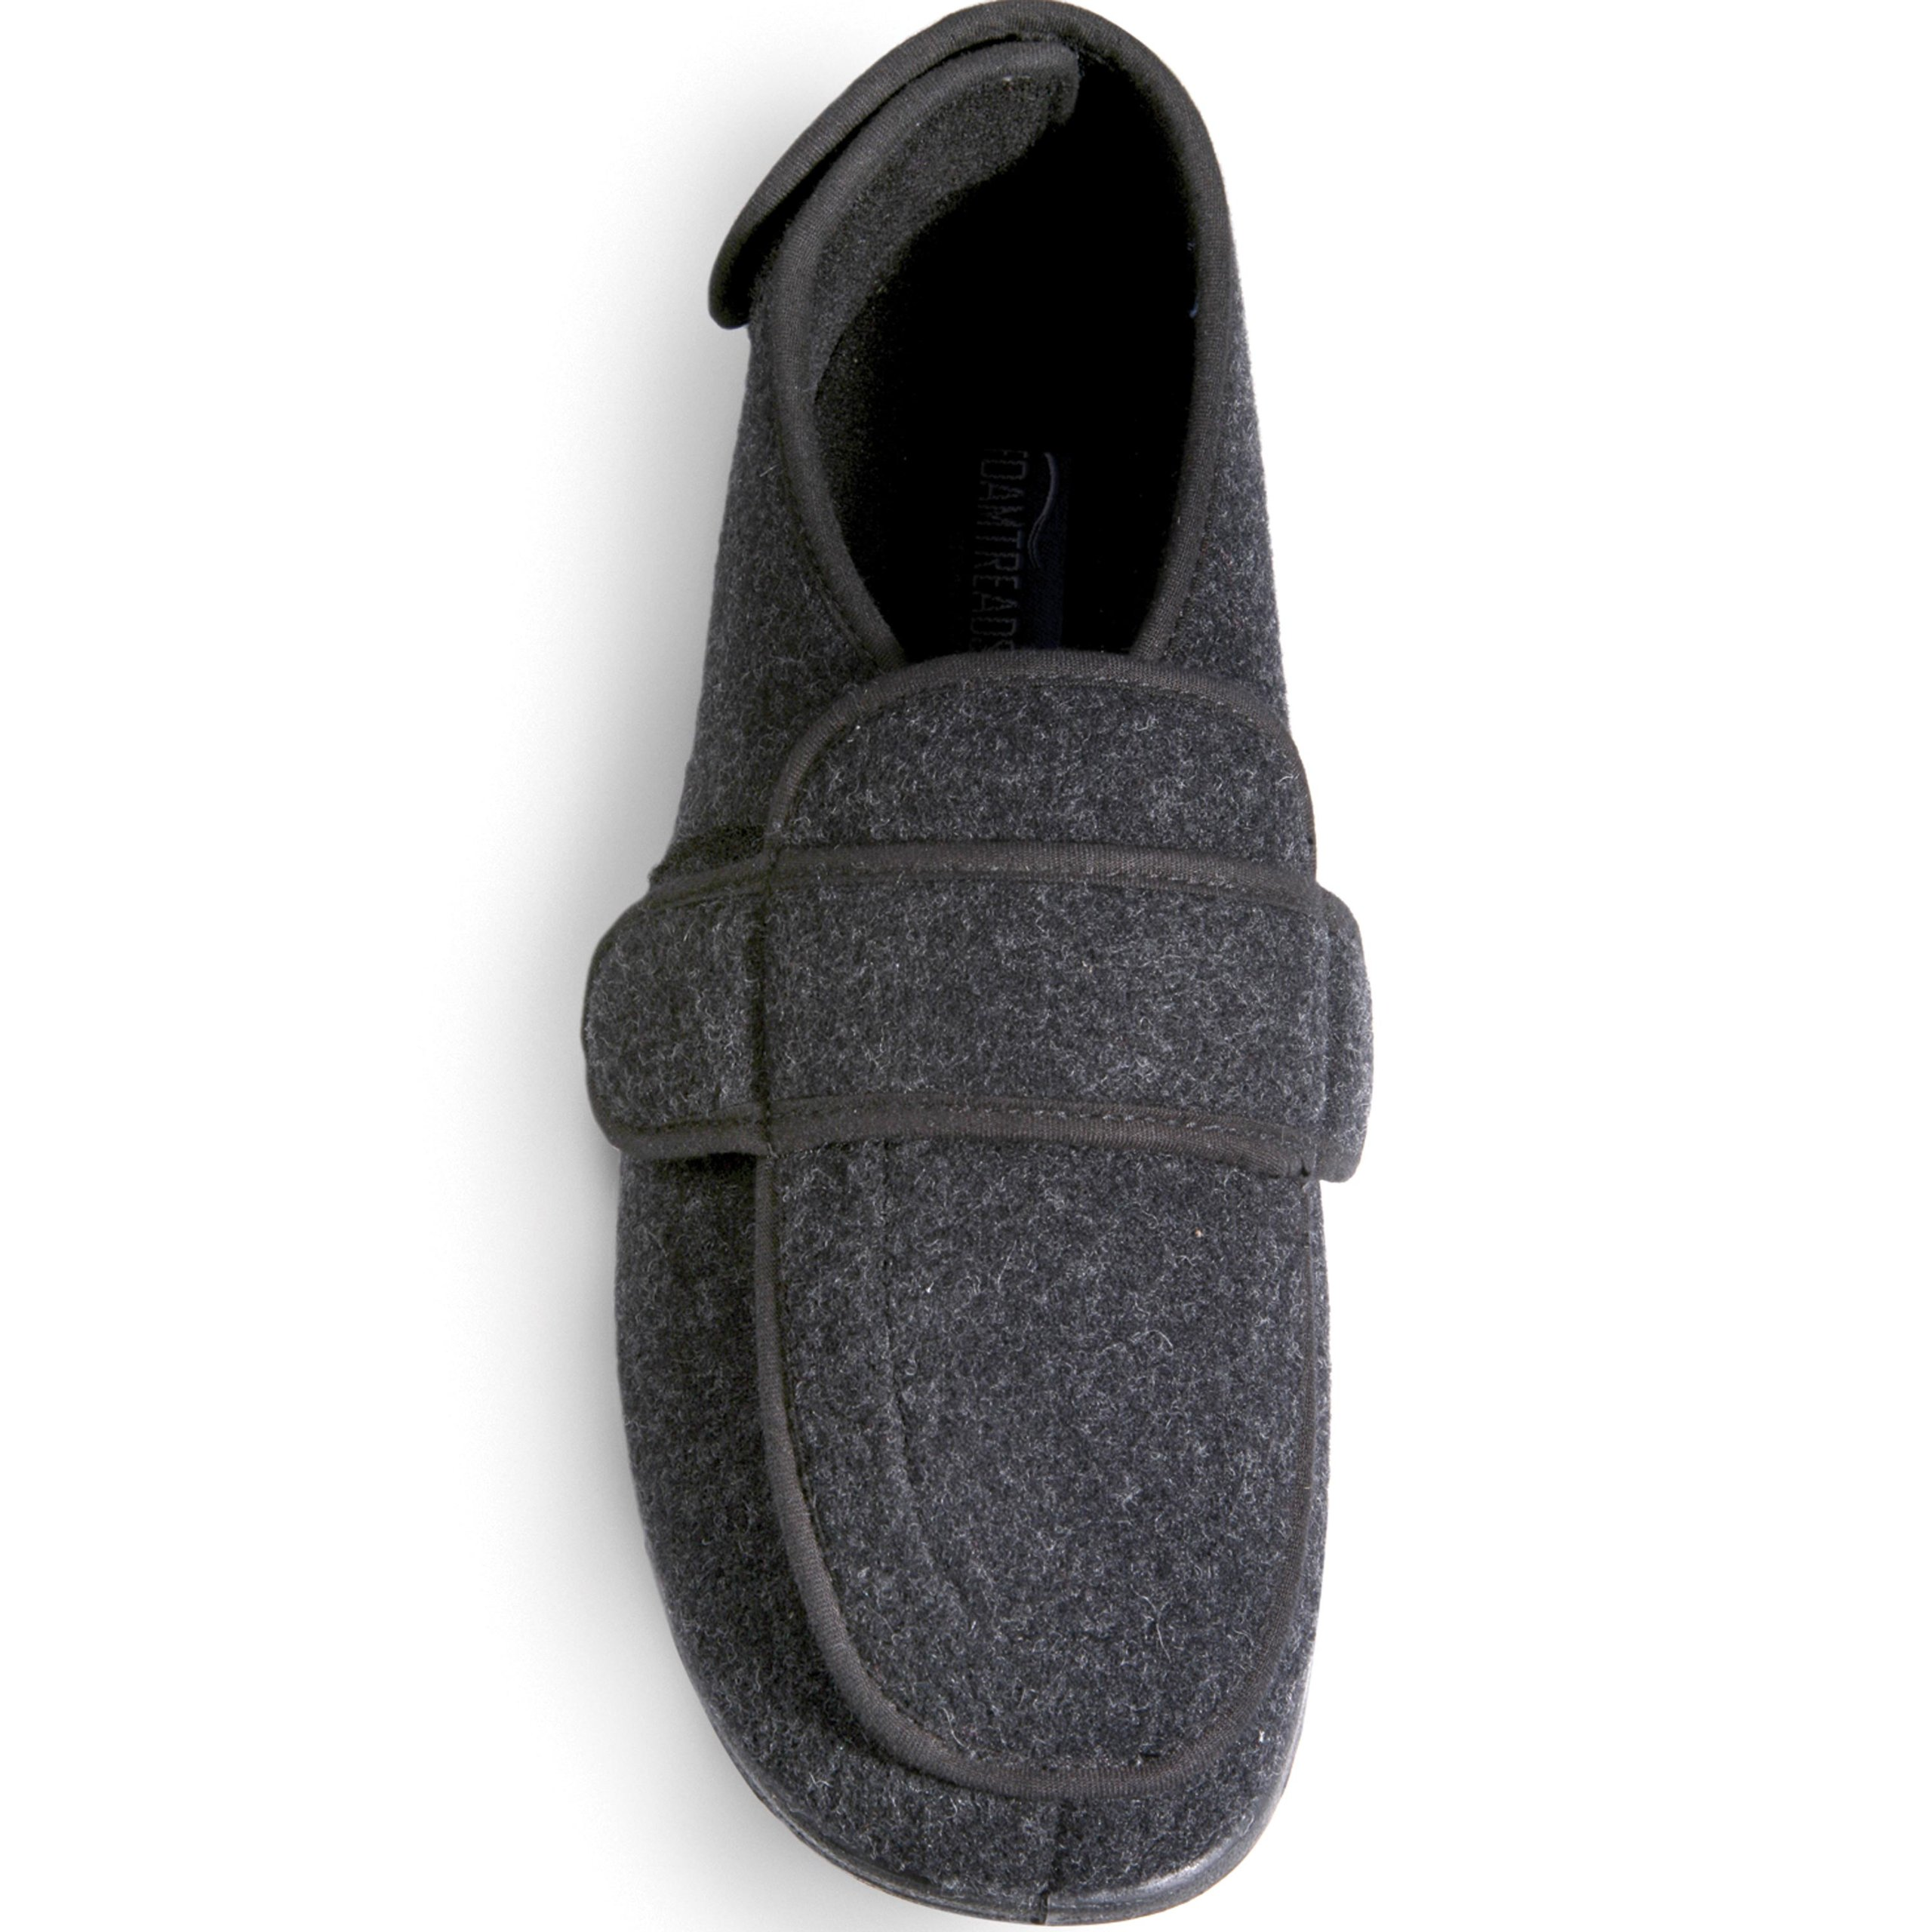 Foamtreads Men's Extra-Depth Wool Slippers,Charcoal,8.5 M US